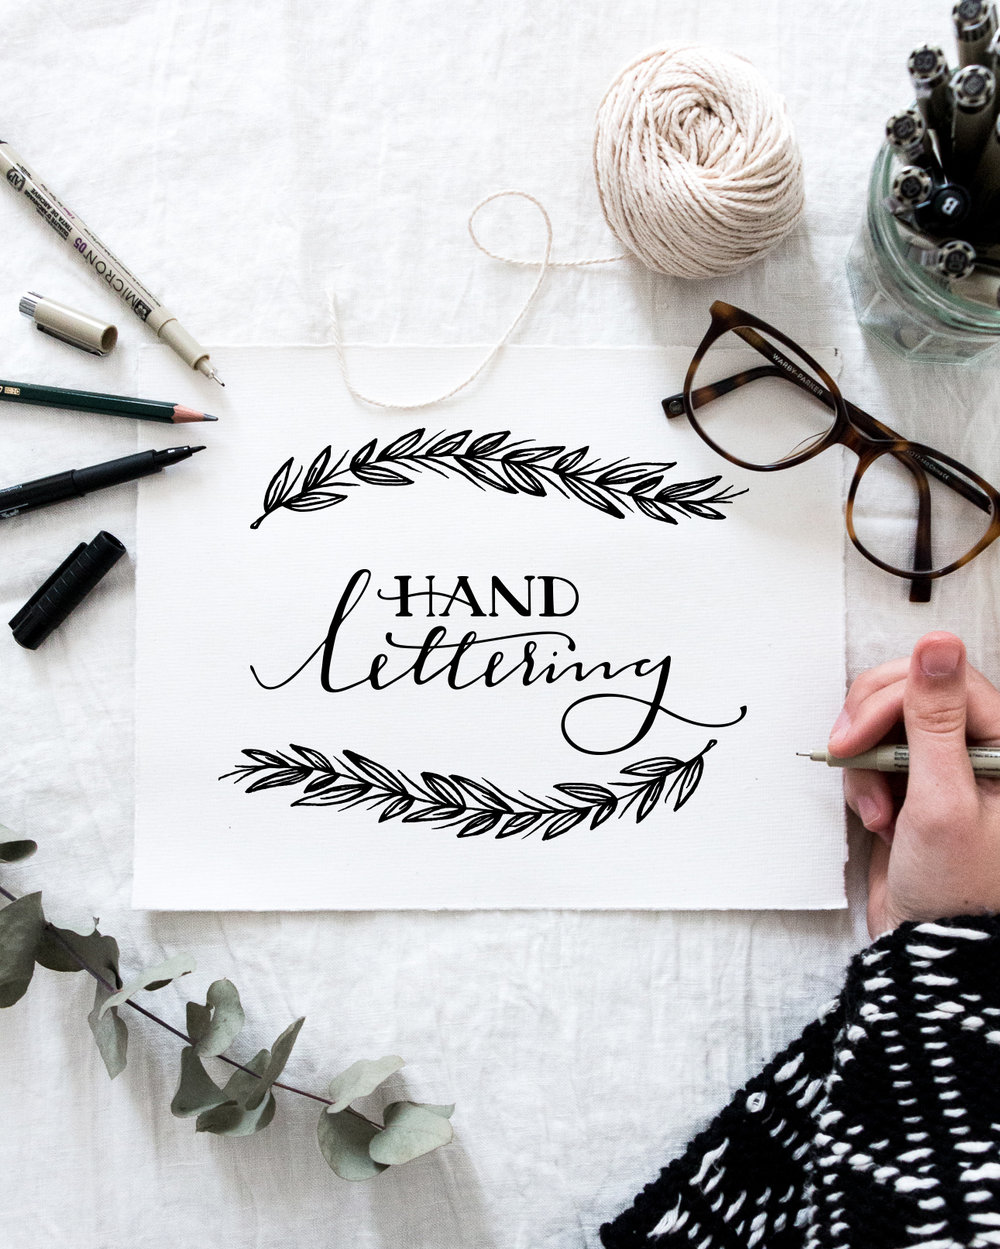 Learn Hand Lettering At The Creating for Good Creative Conference | Britt Fabello | Sea of Atlas